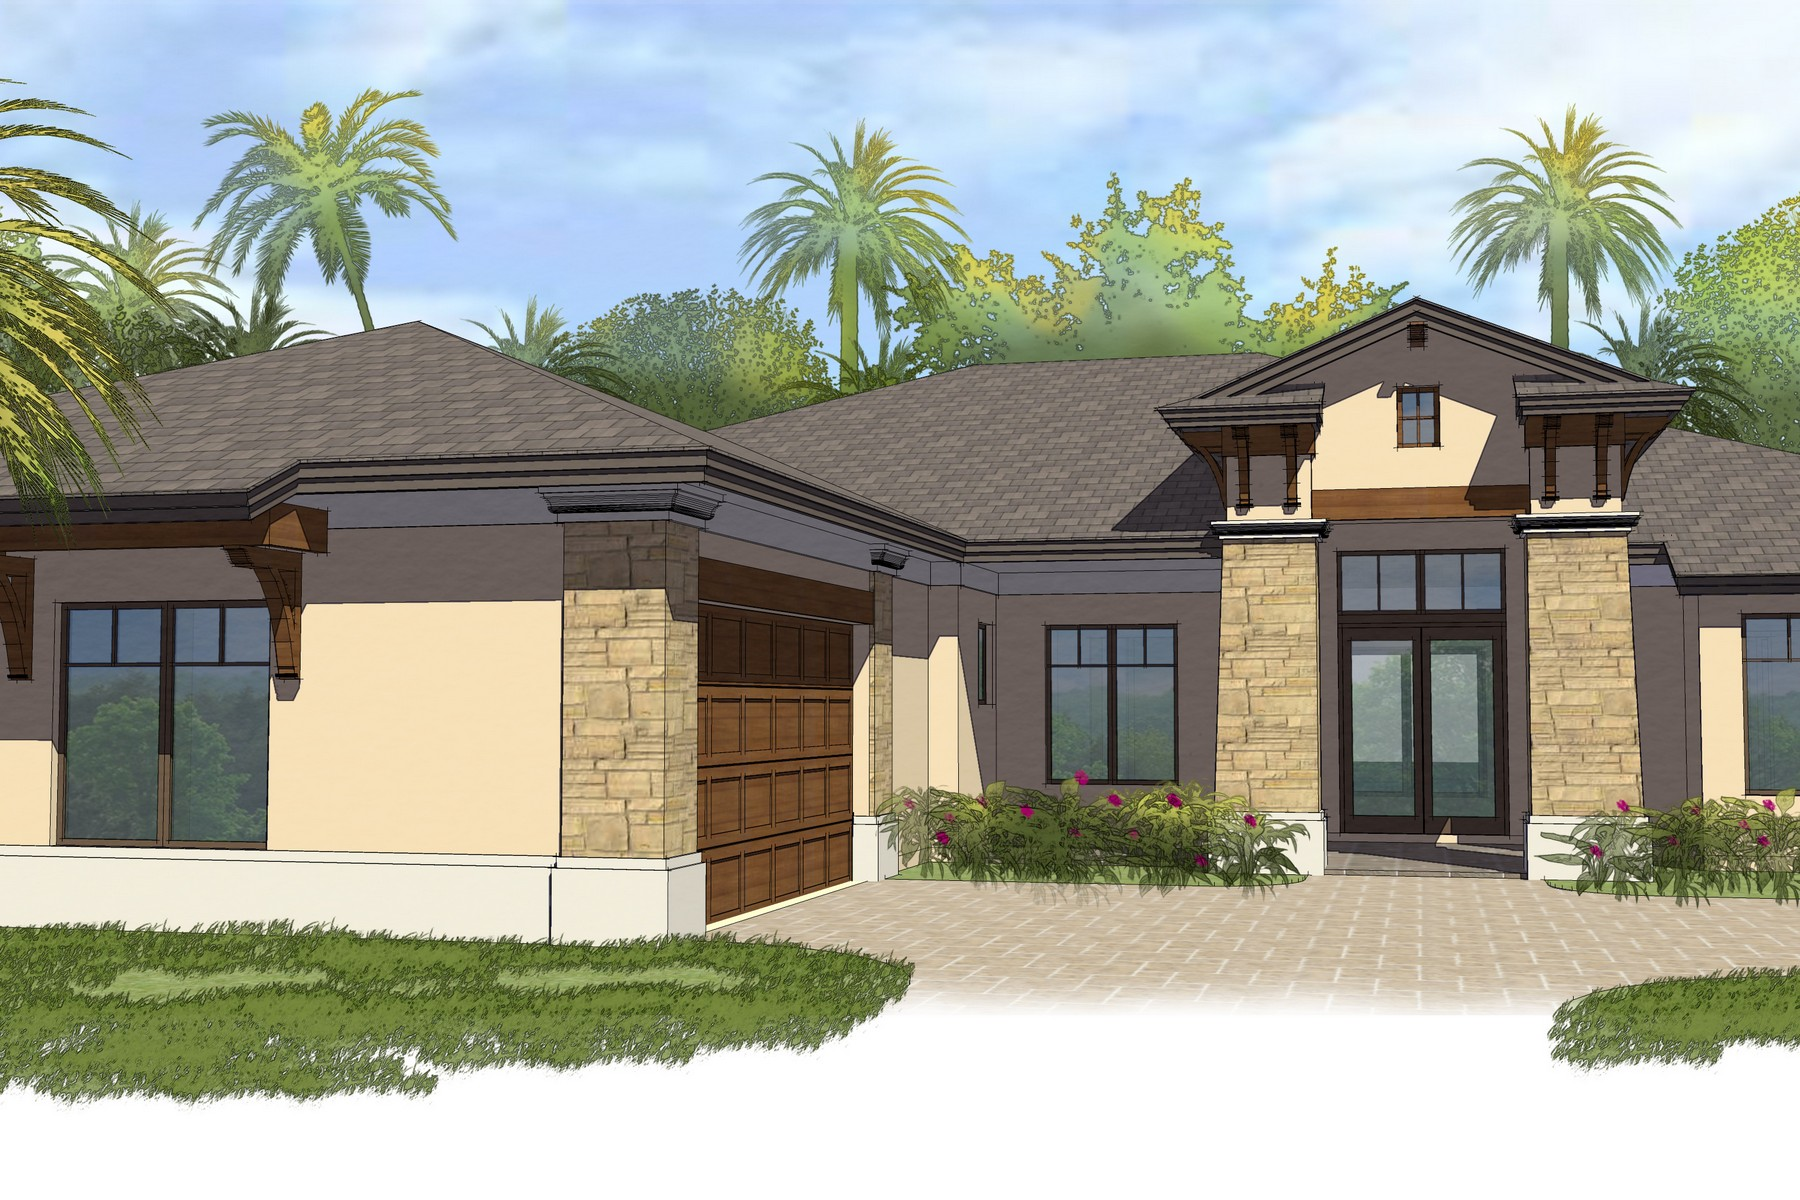 一戸建て のために 売買 アット Luxury New Home in the Reserve at Grand Harbor 2373 Grand Harbor Reserve Square Vero Beach, フロリダ 32967 アメリカ